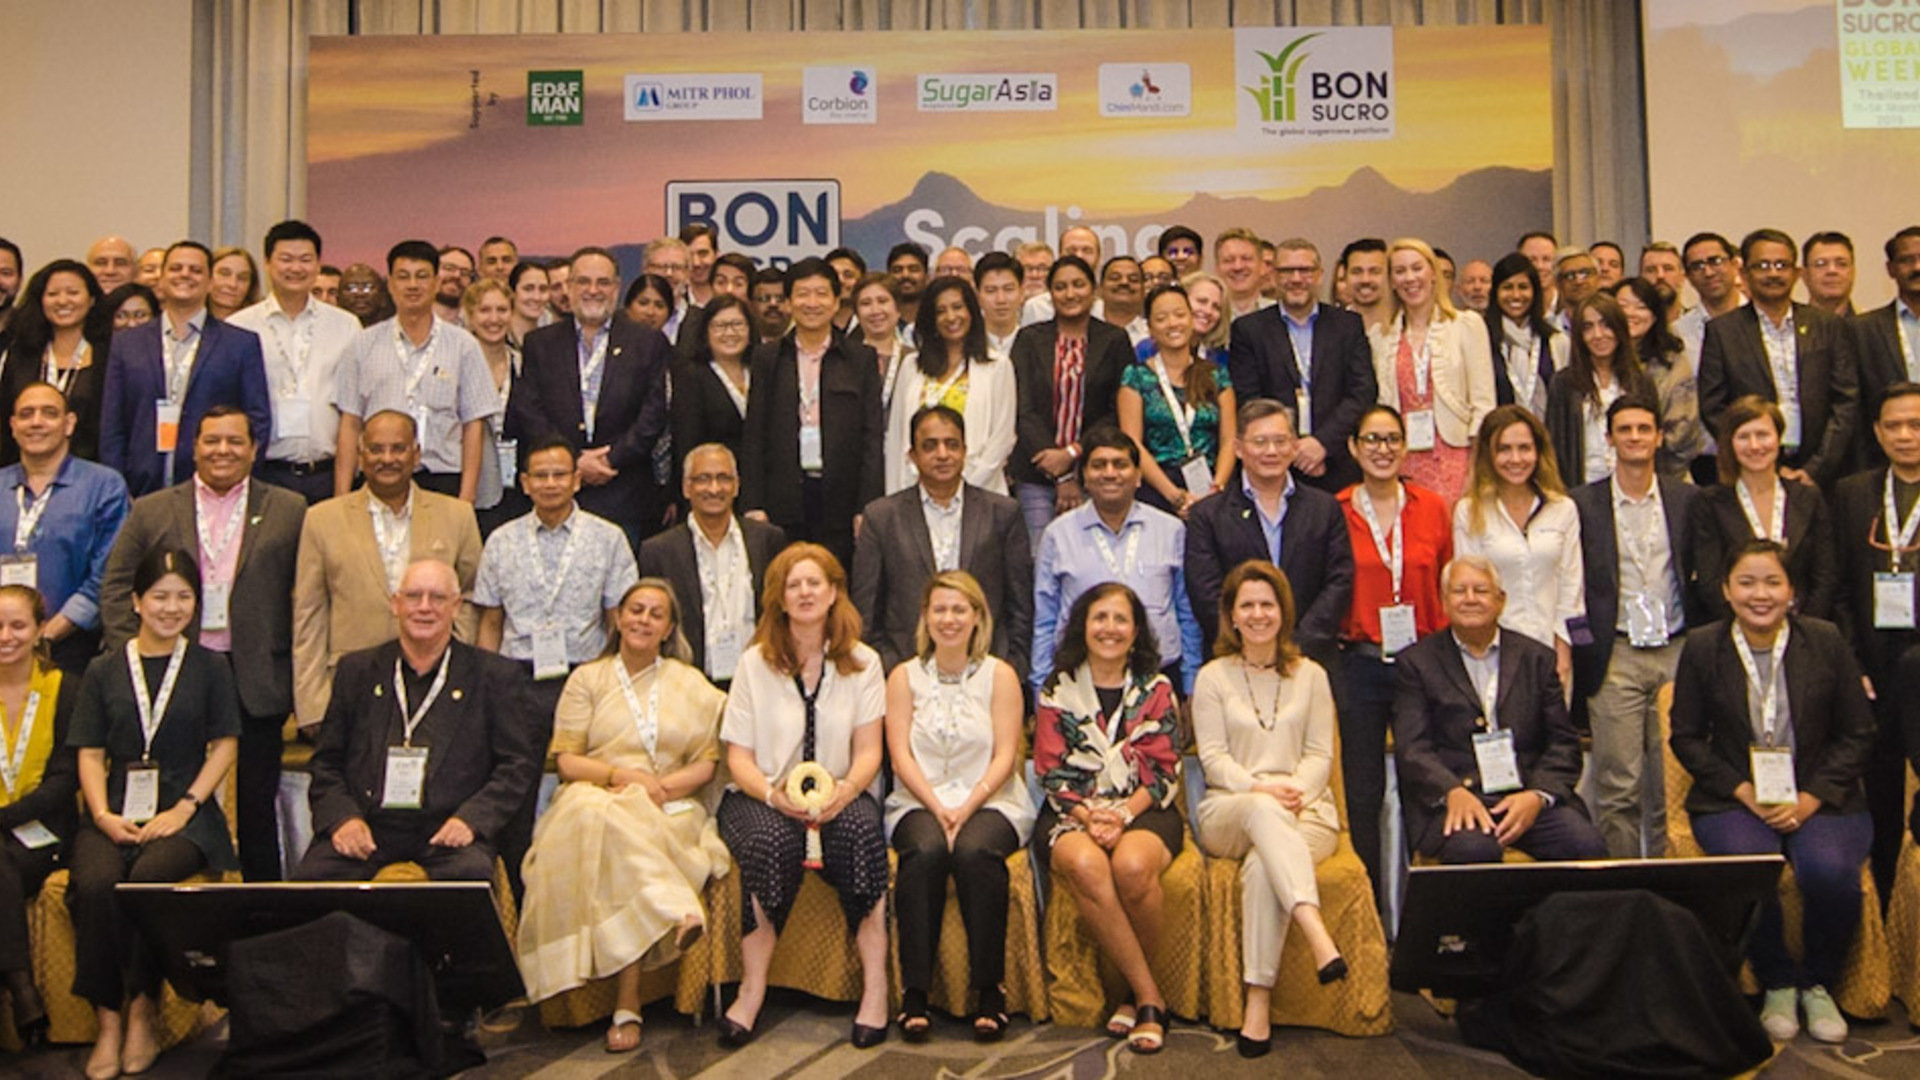 Alteo participated in the Bonsucro Global Week in Bangkok, Thailand